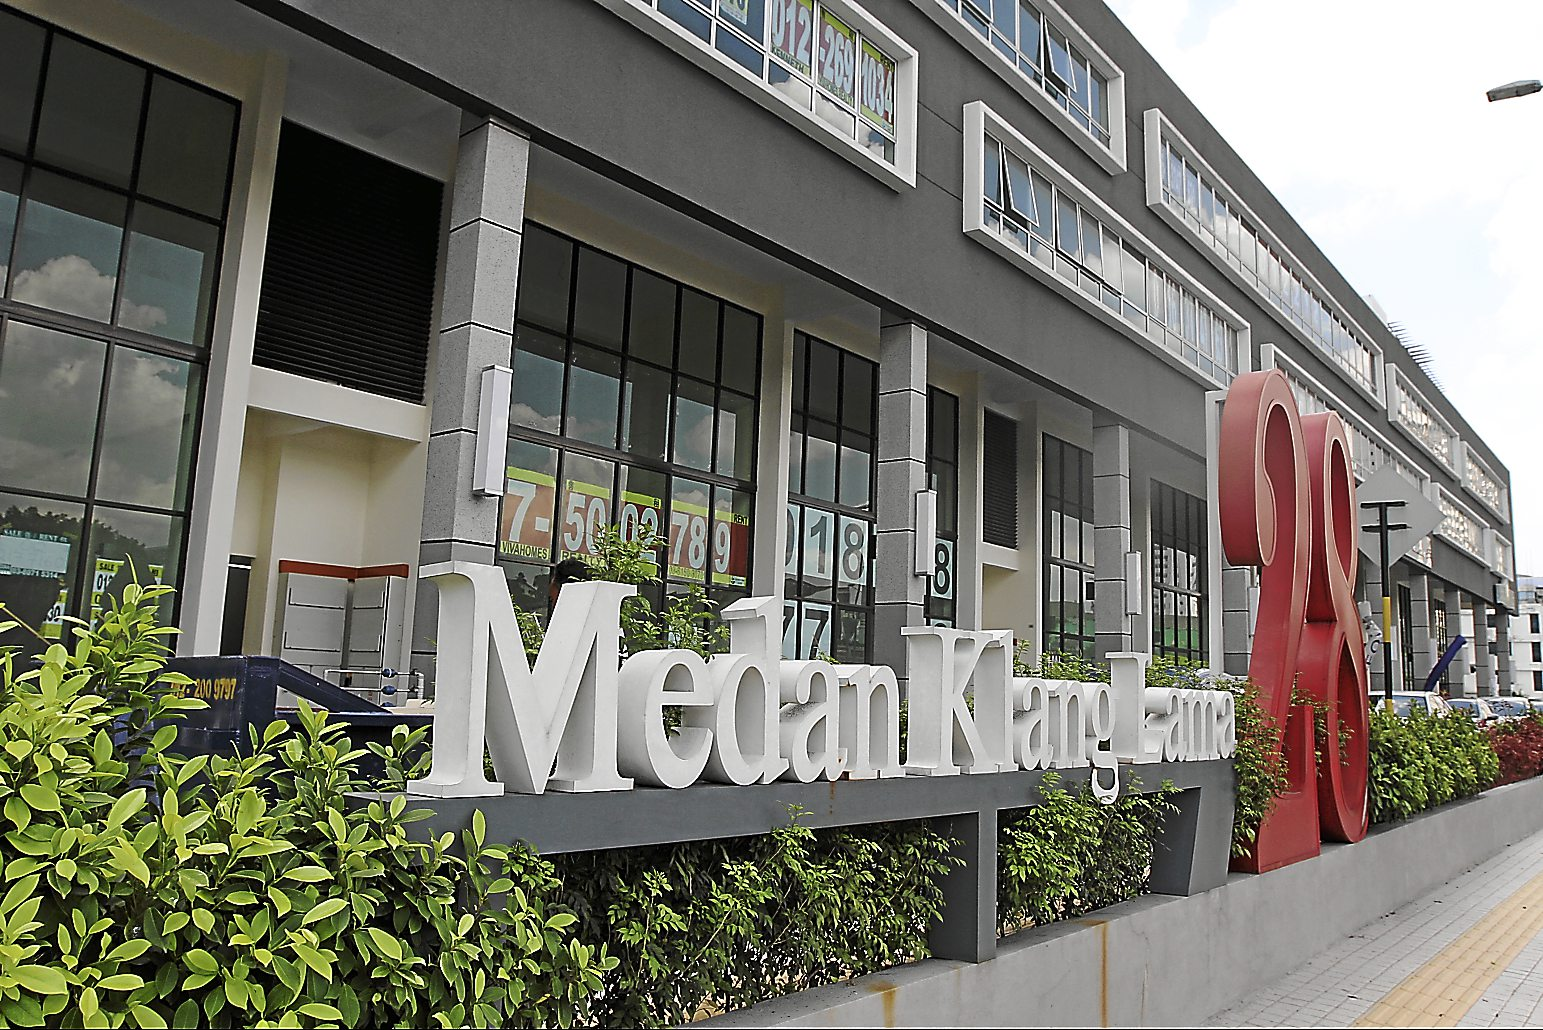 Medan Kelang Lama 28 is open for business but its units are not fully occupied yet.